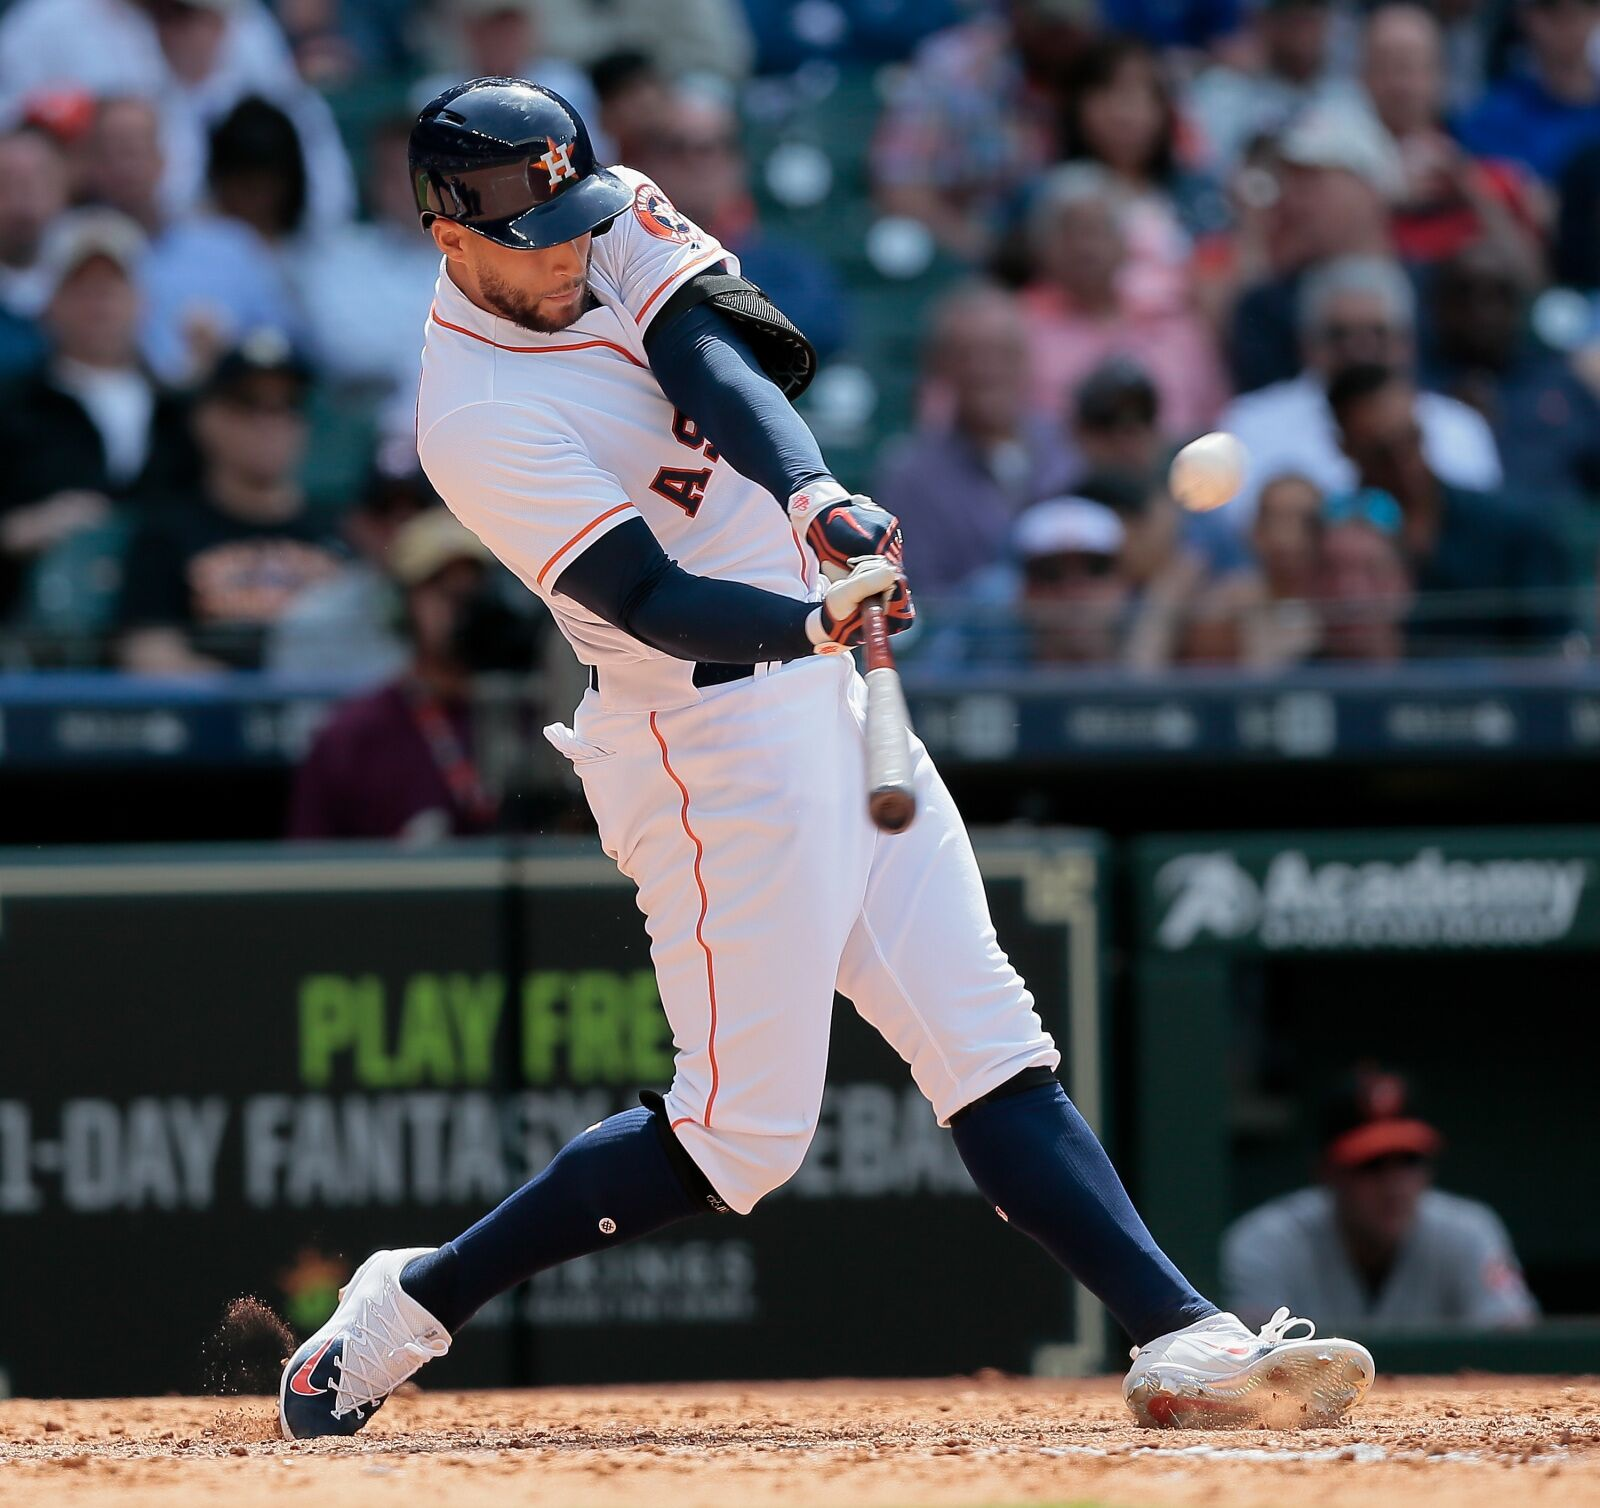 2935a247f San Diego Padres  Series Preview vs. World Champion Astros